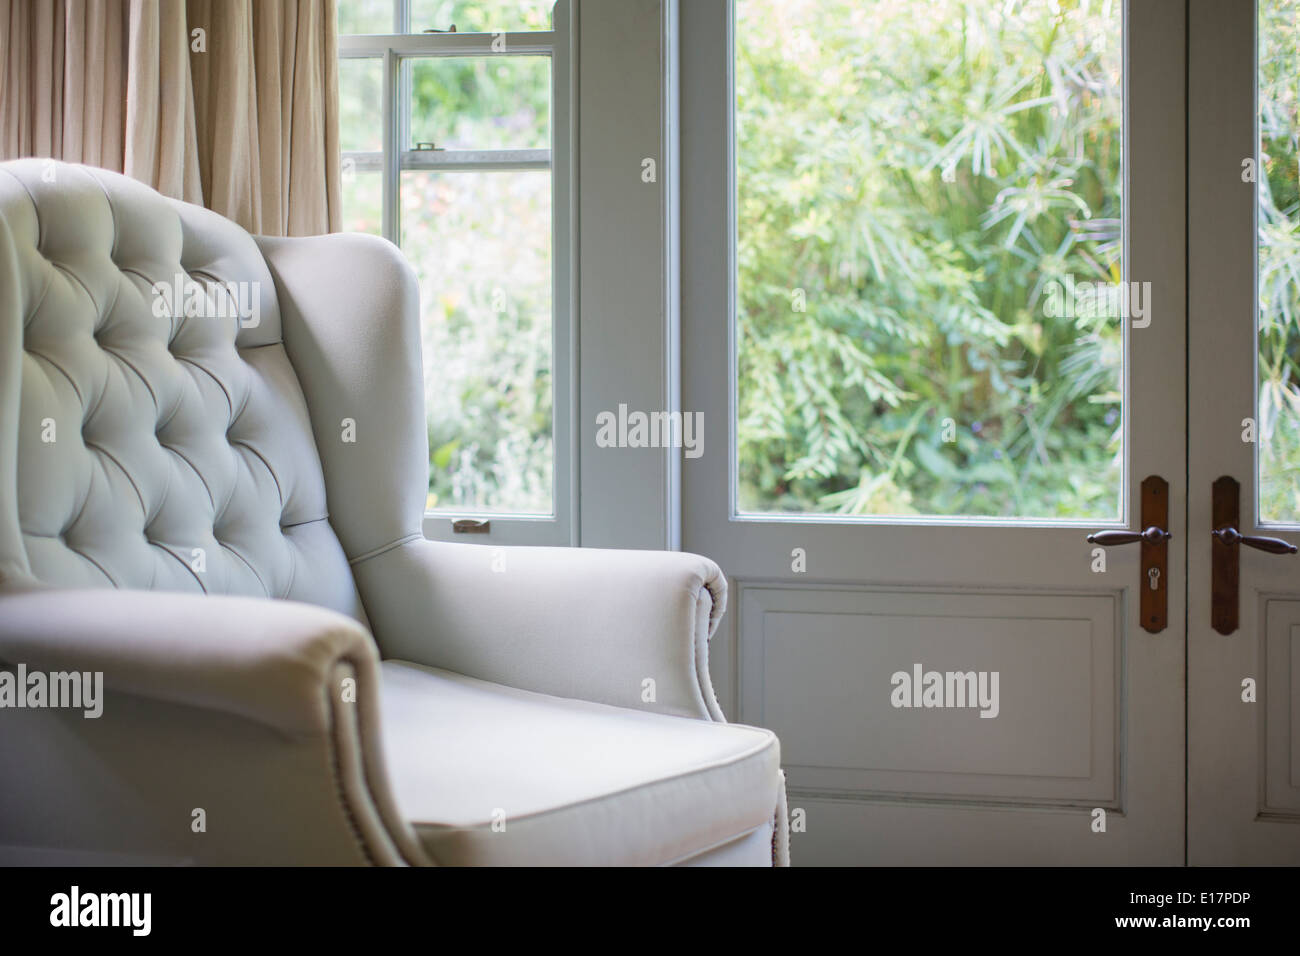 Tufted wingback chair near window - Stock Image